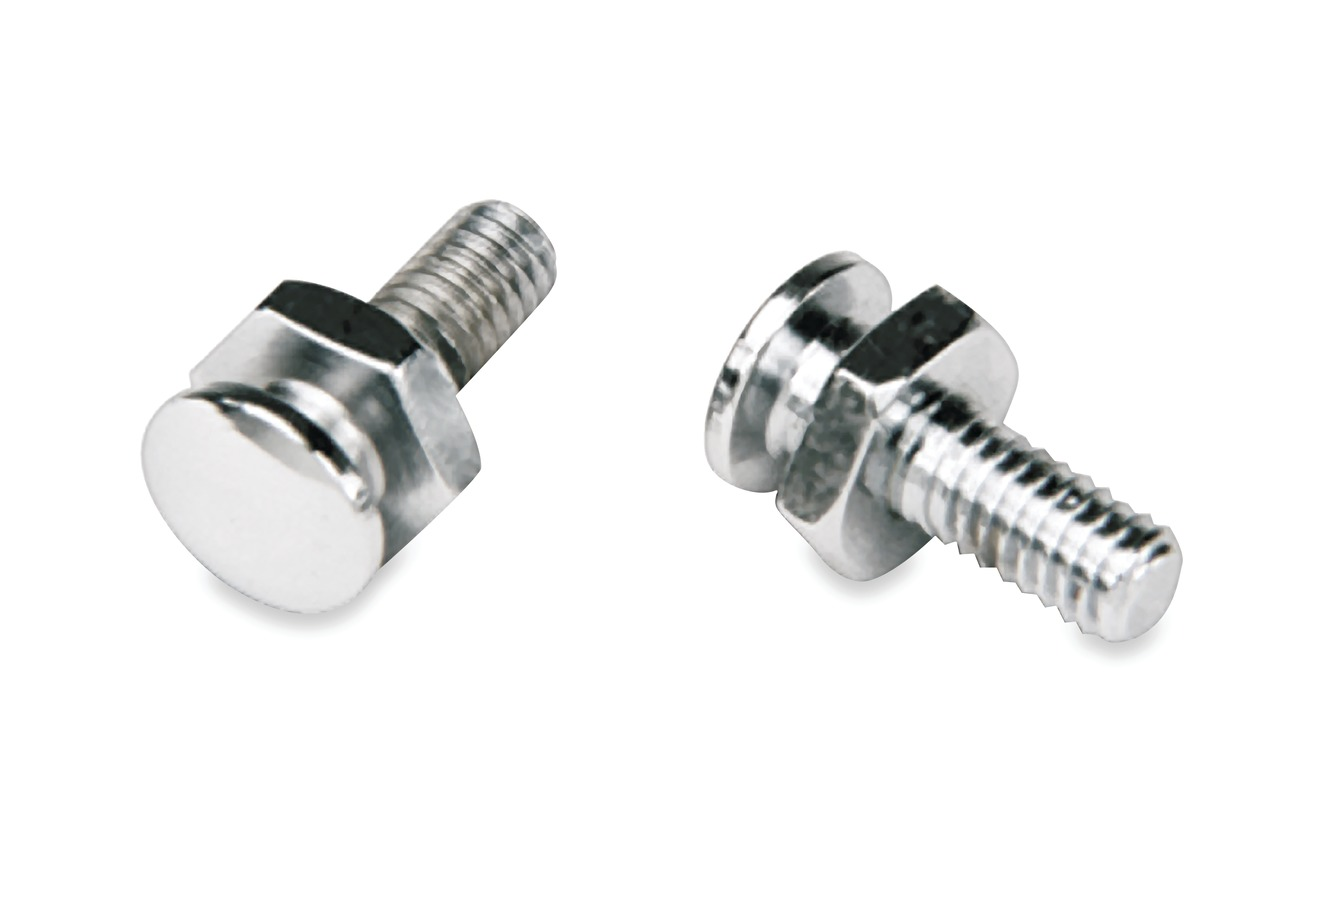 Solo Mounting Bolts, 5/16-18 Thread (pair)